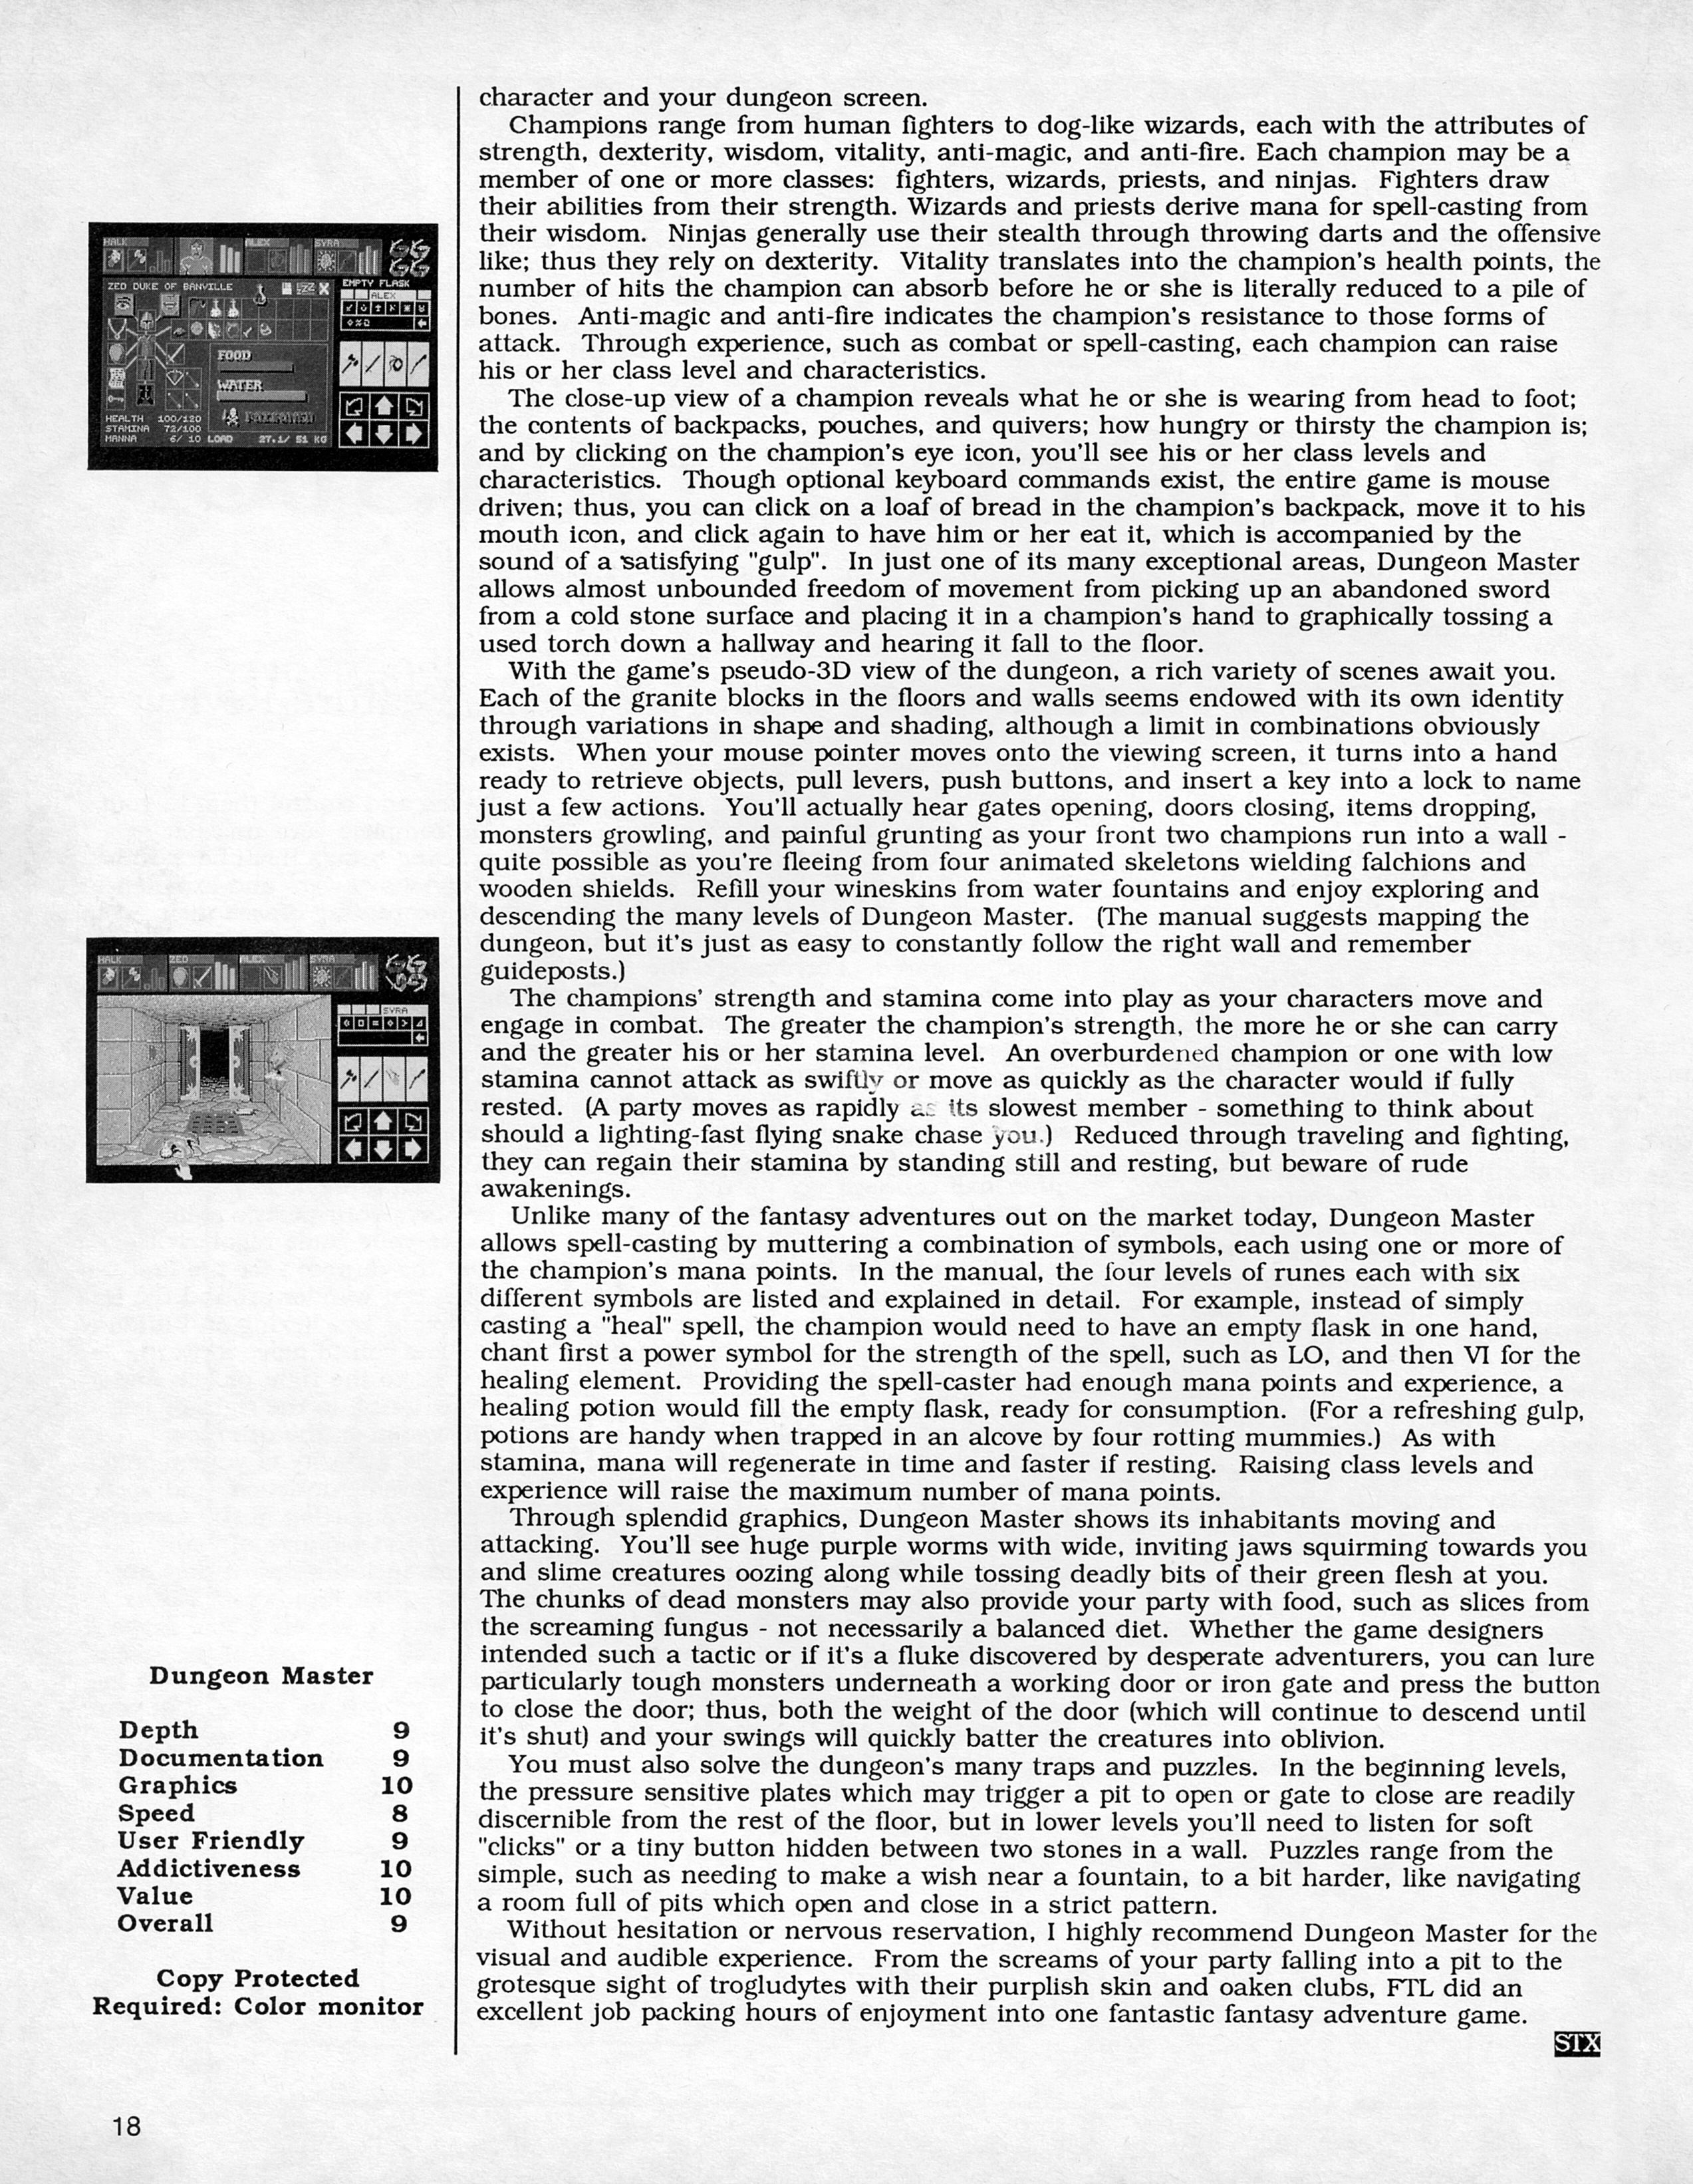 Dungeon Master for Atari ST Review published in American magazine 'ST X-PRESS', Vol 2 No 2 March 1988, Page 18